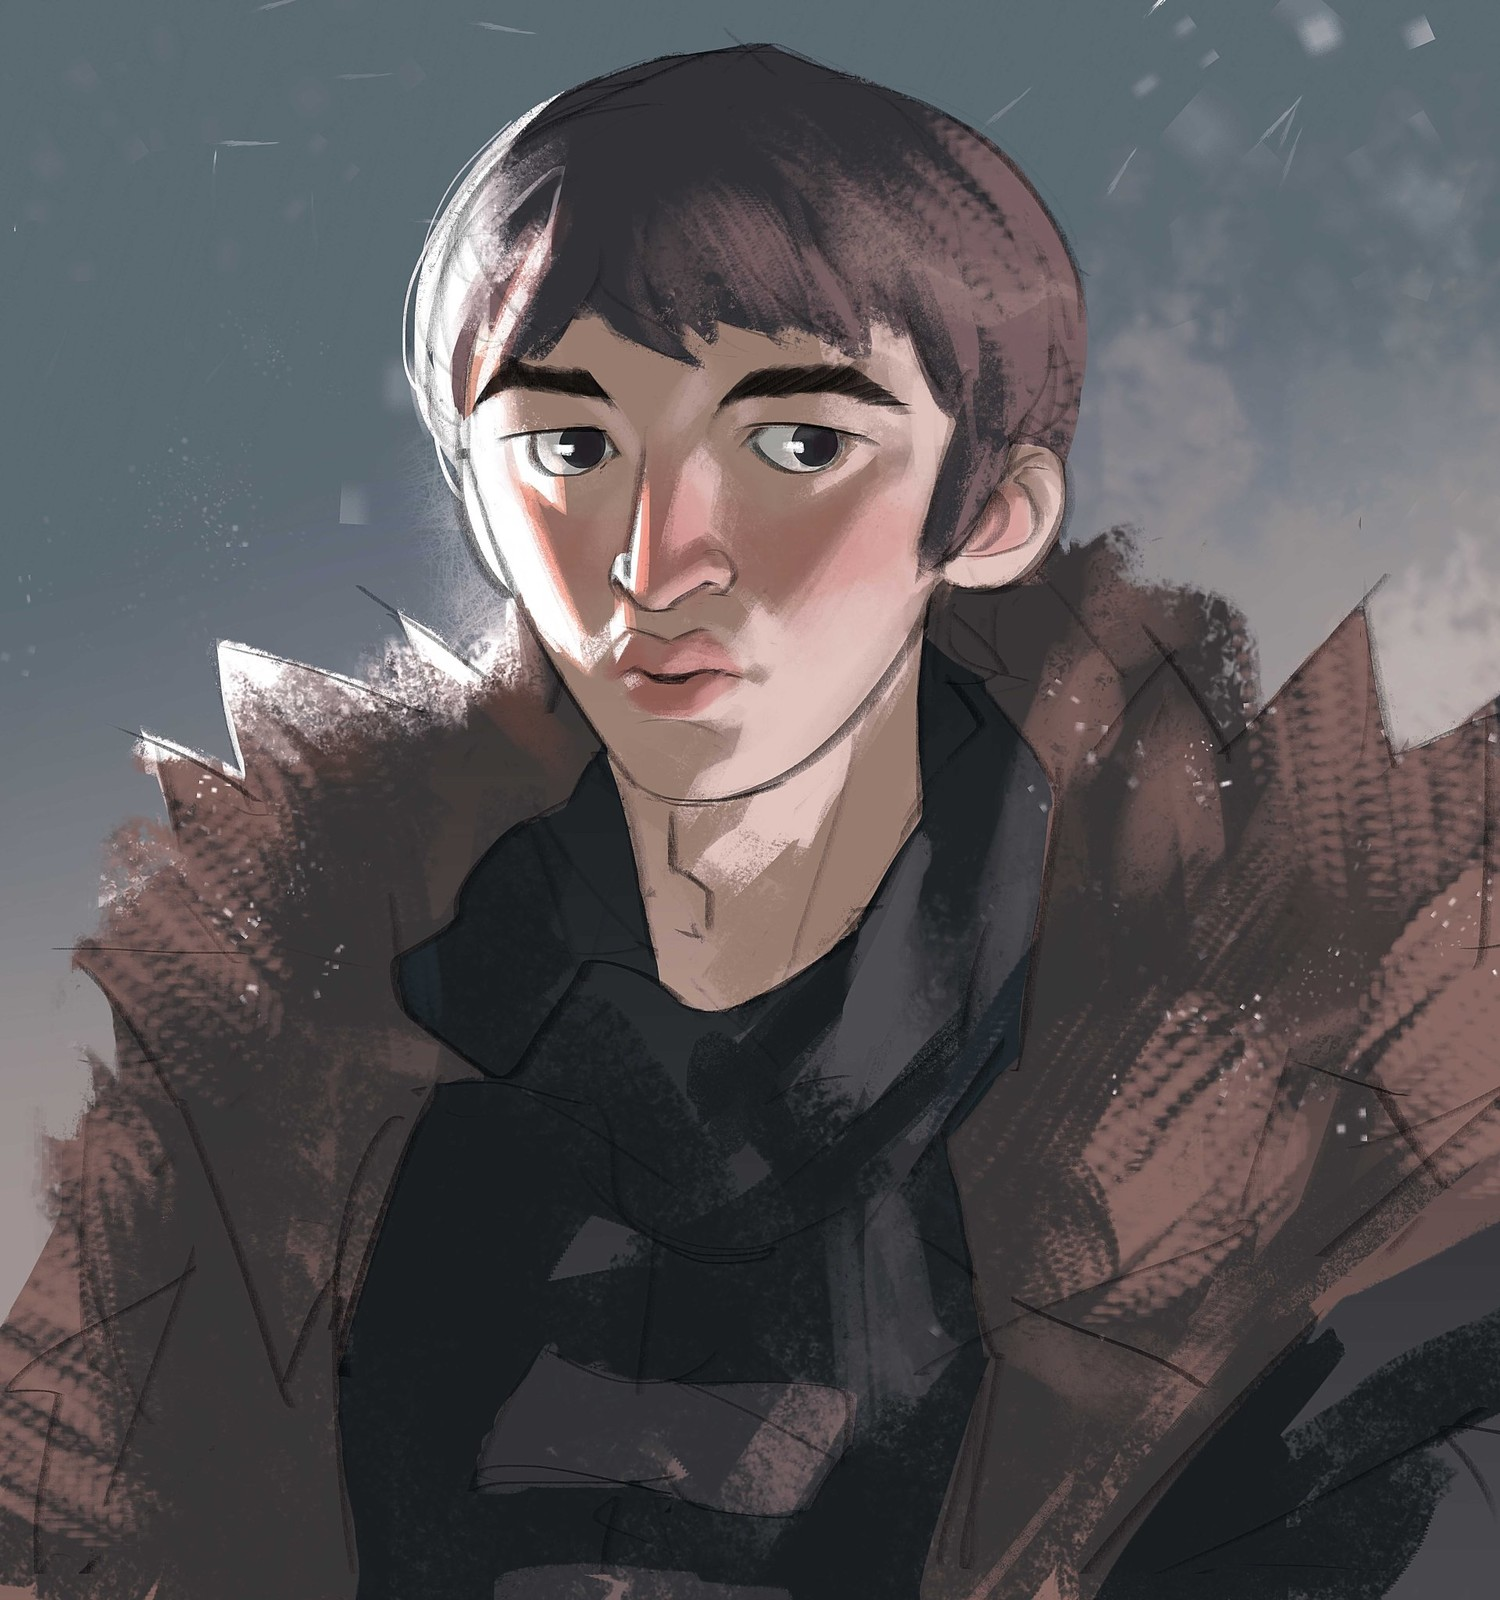 I'll finish this Game of Thrones series with Bran, the only character who knows everything but says nothing